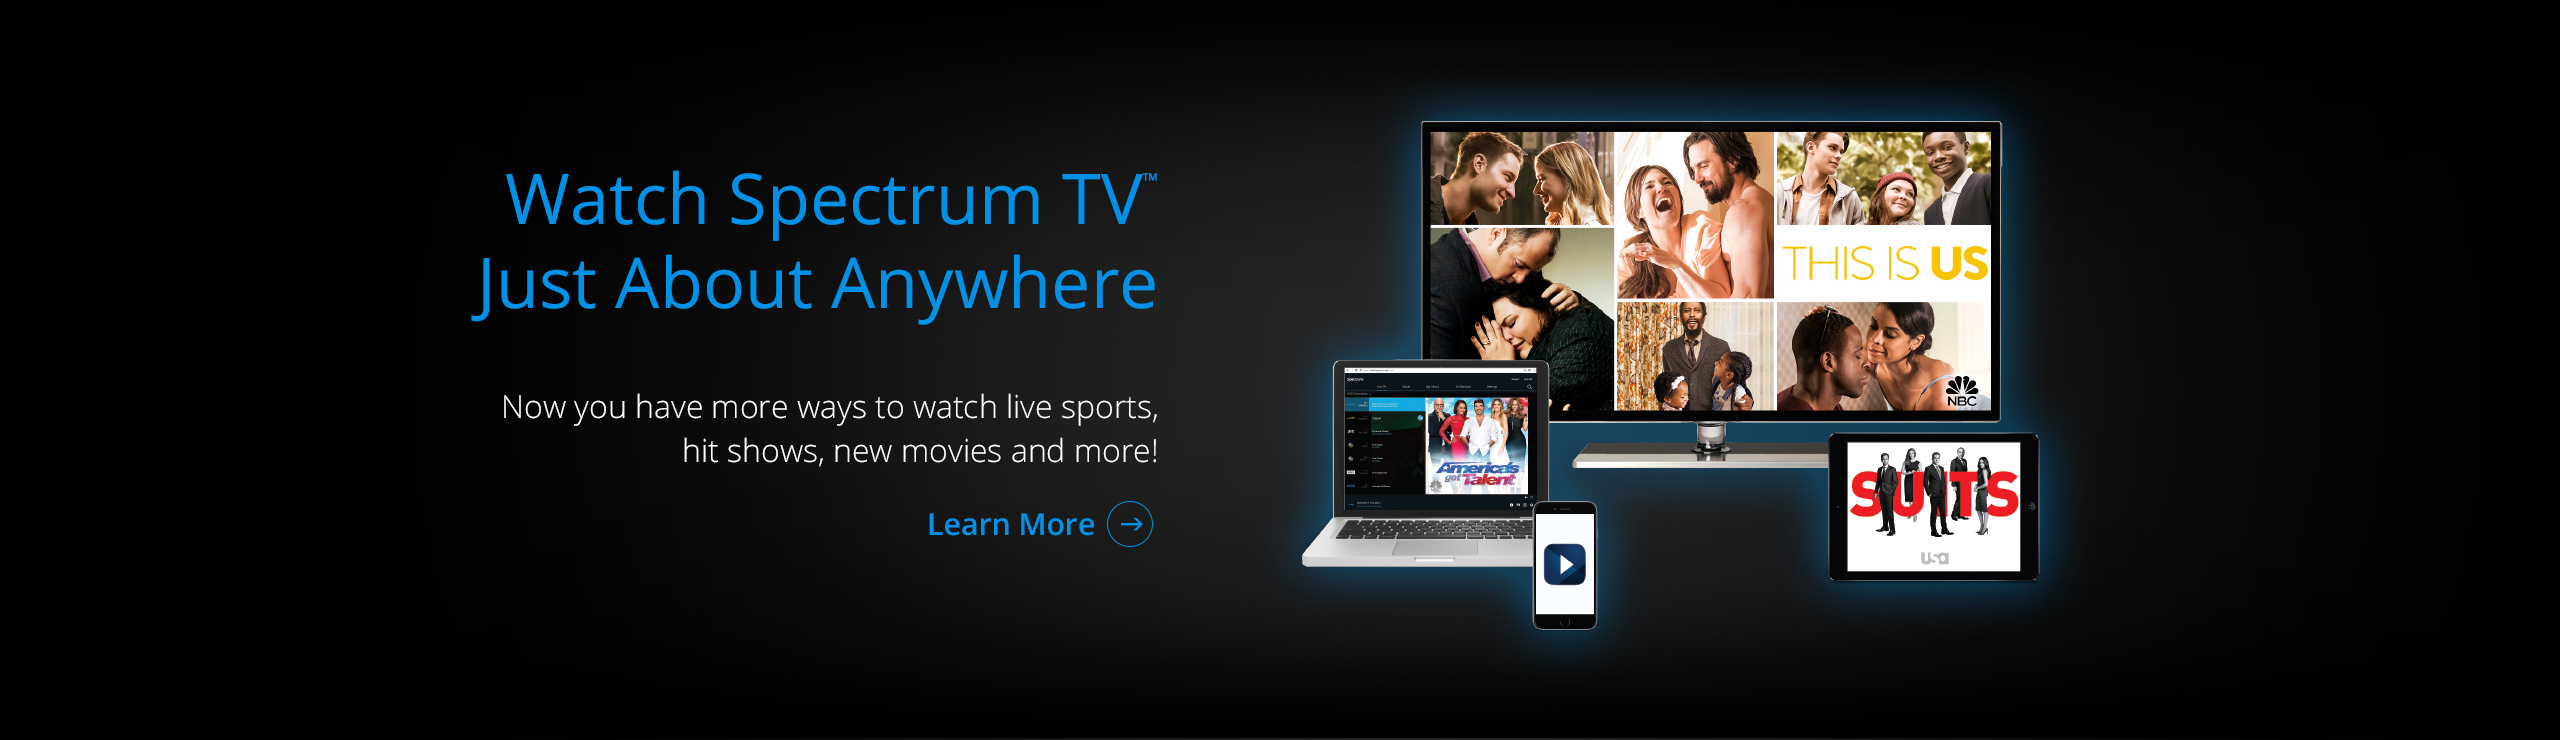 Watch Spectrum TV Just About Anywhere! Click Here!